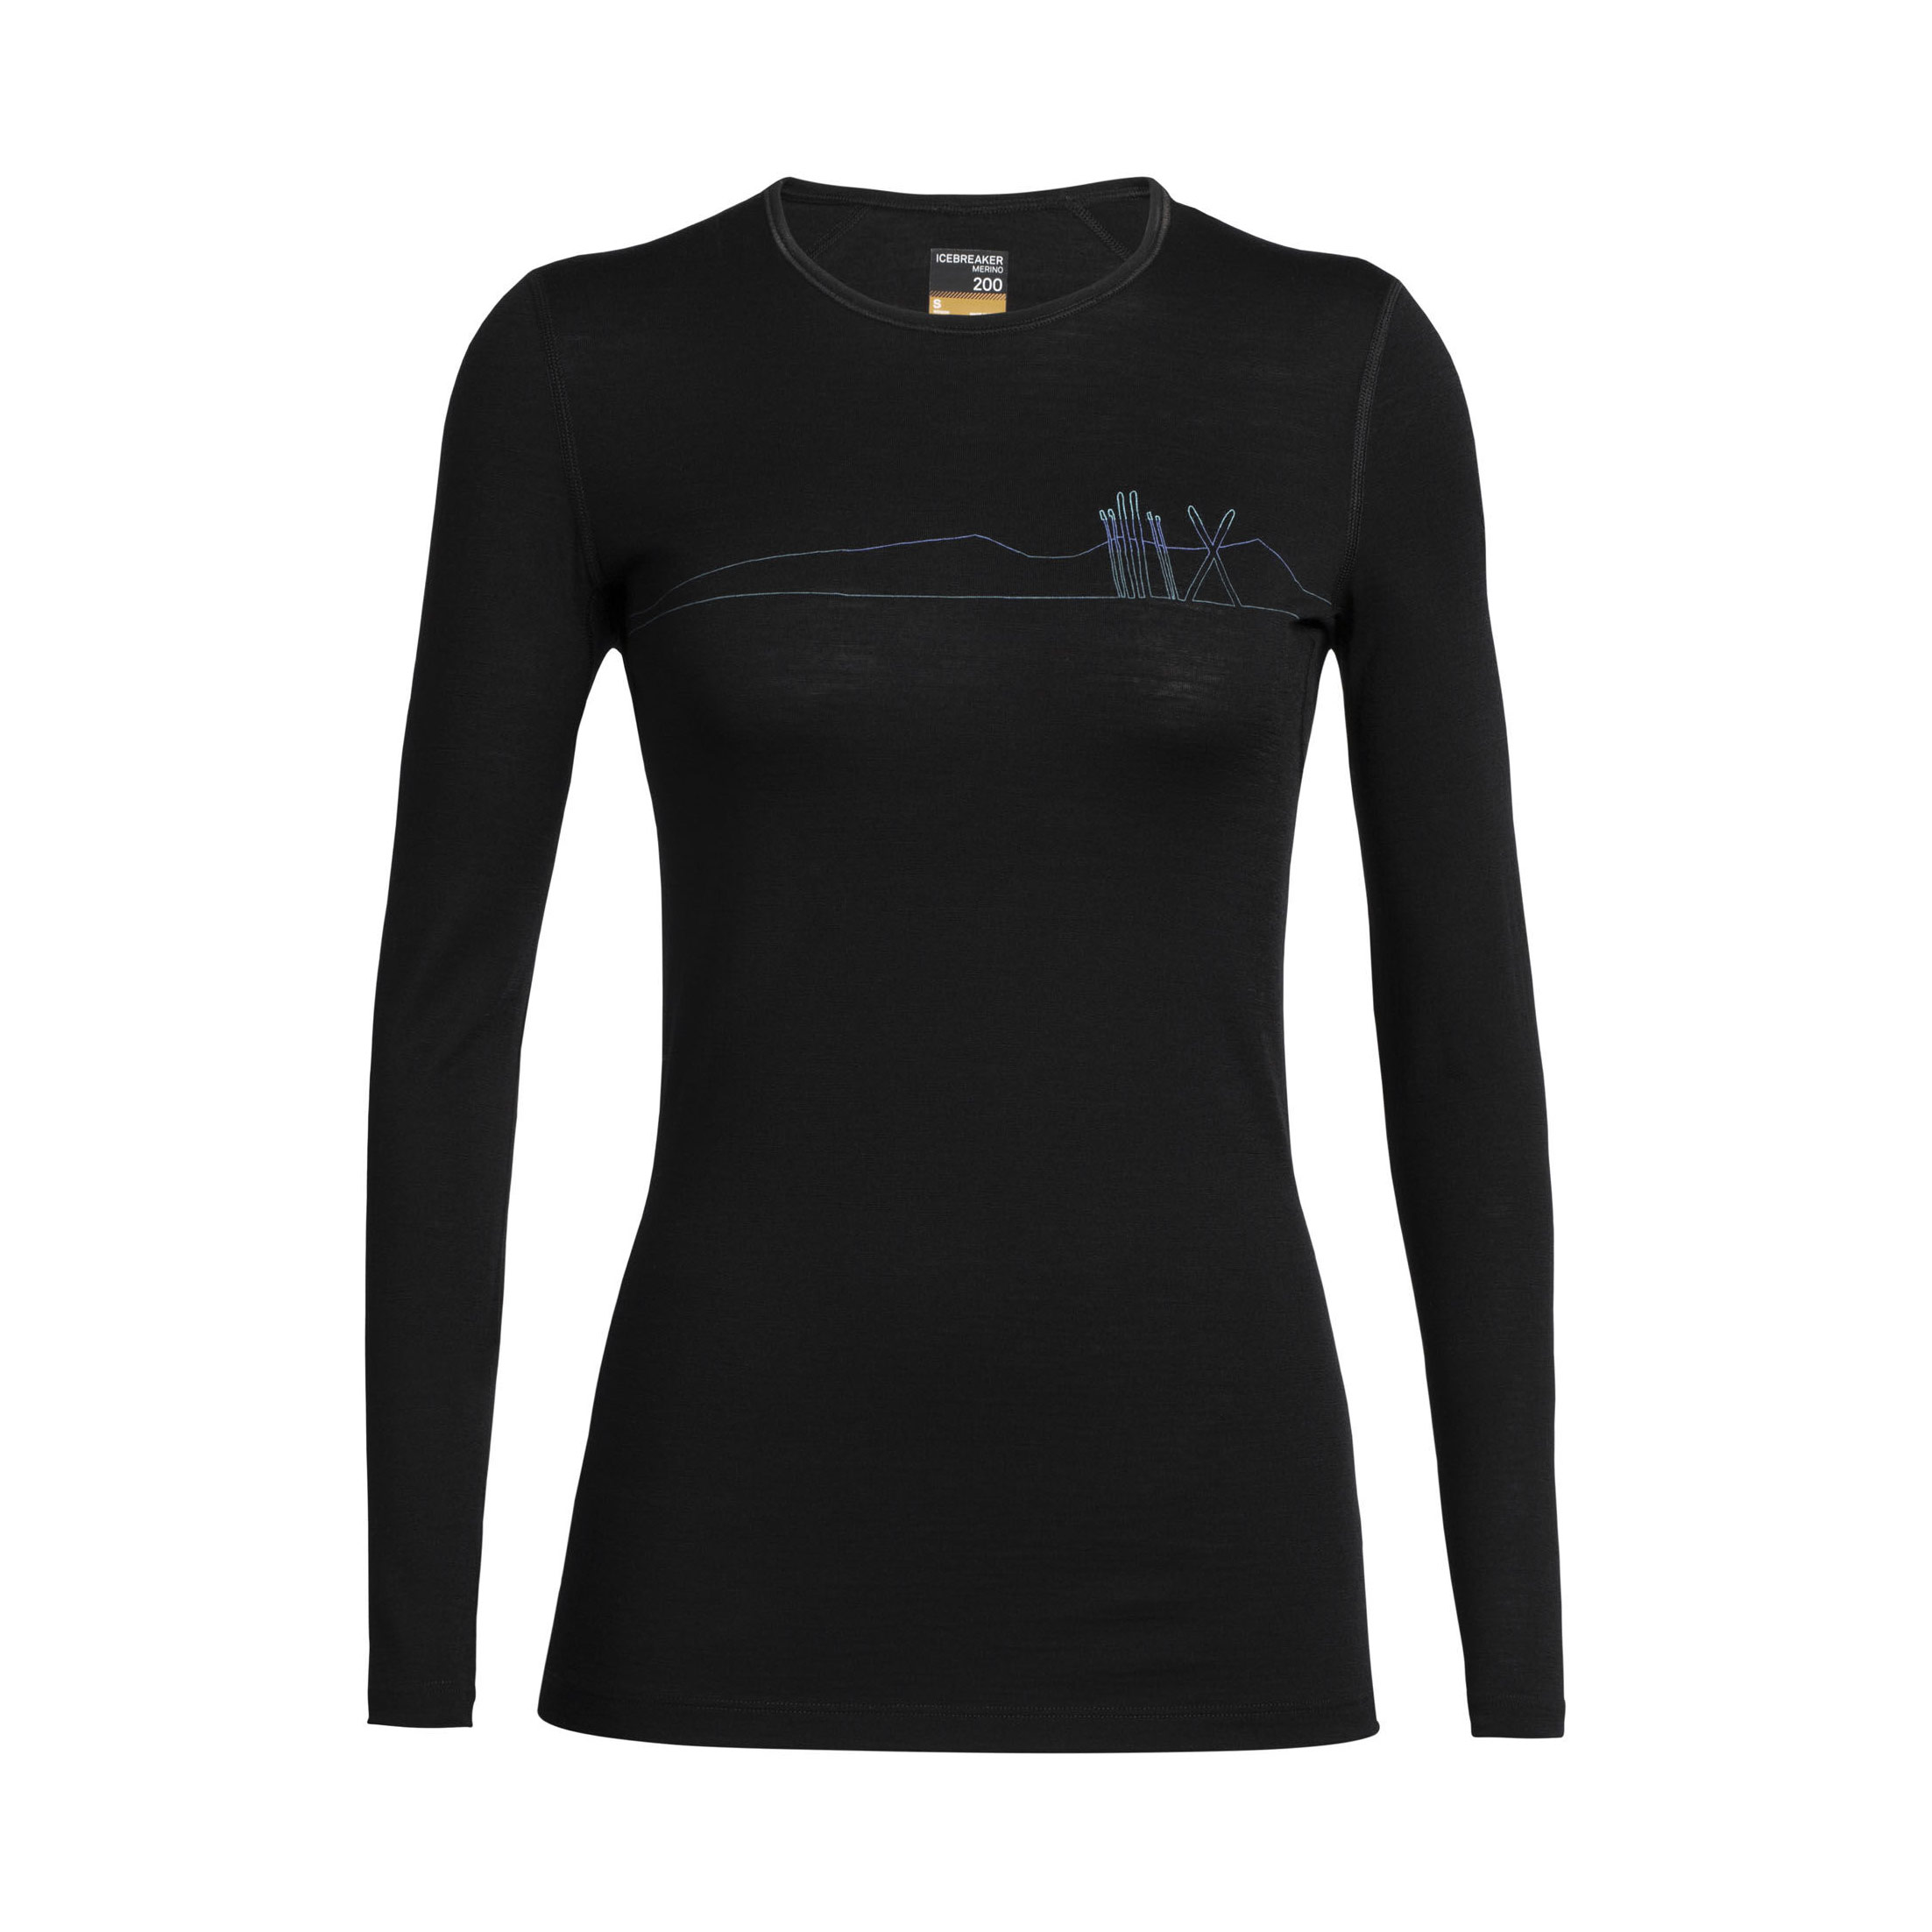 Skis in Snow 200 Oasis Crewe Long Sleeve - Women's